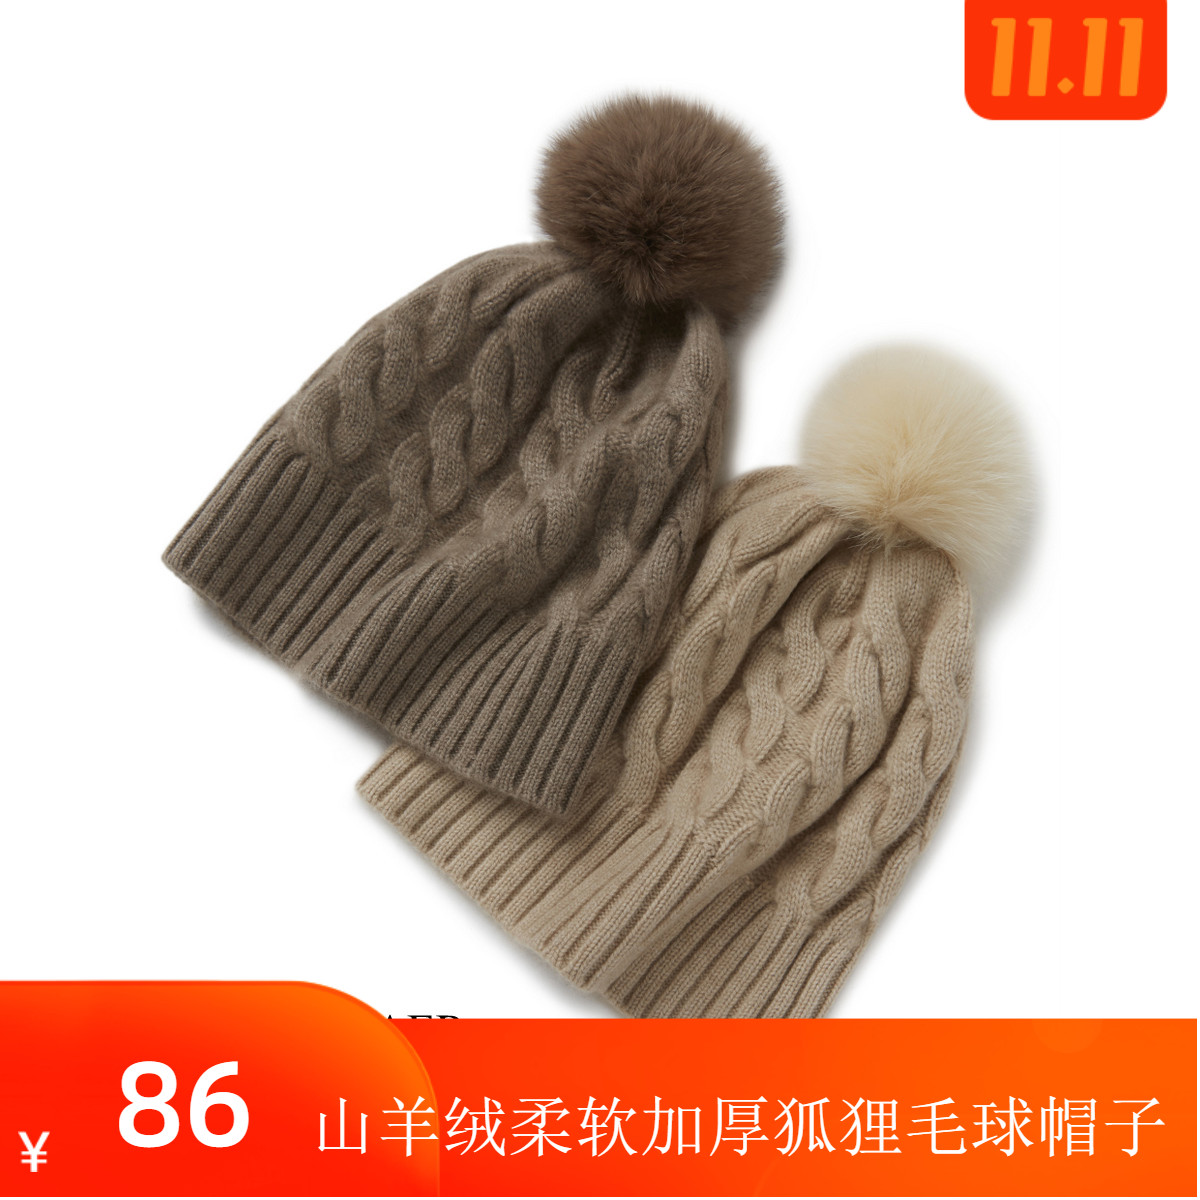 Export Yidan winter thickened pure cashmere cap childrens knitting twisted fox hair ball wool ear cap